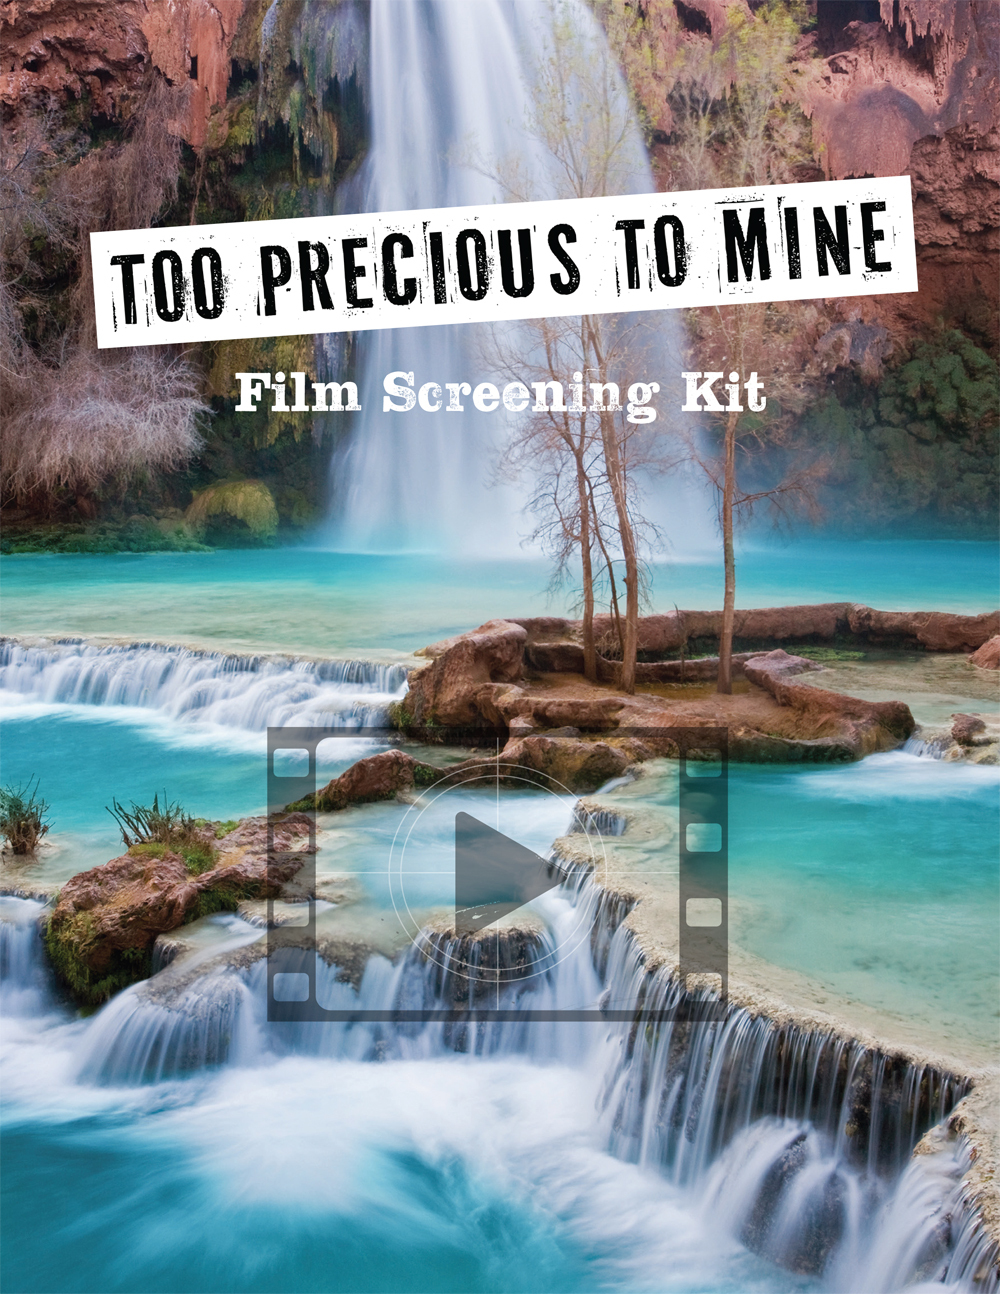 Download the Too Precious to Mine Film Screening Kit